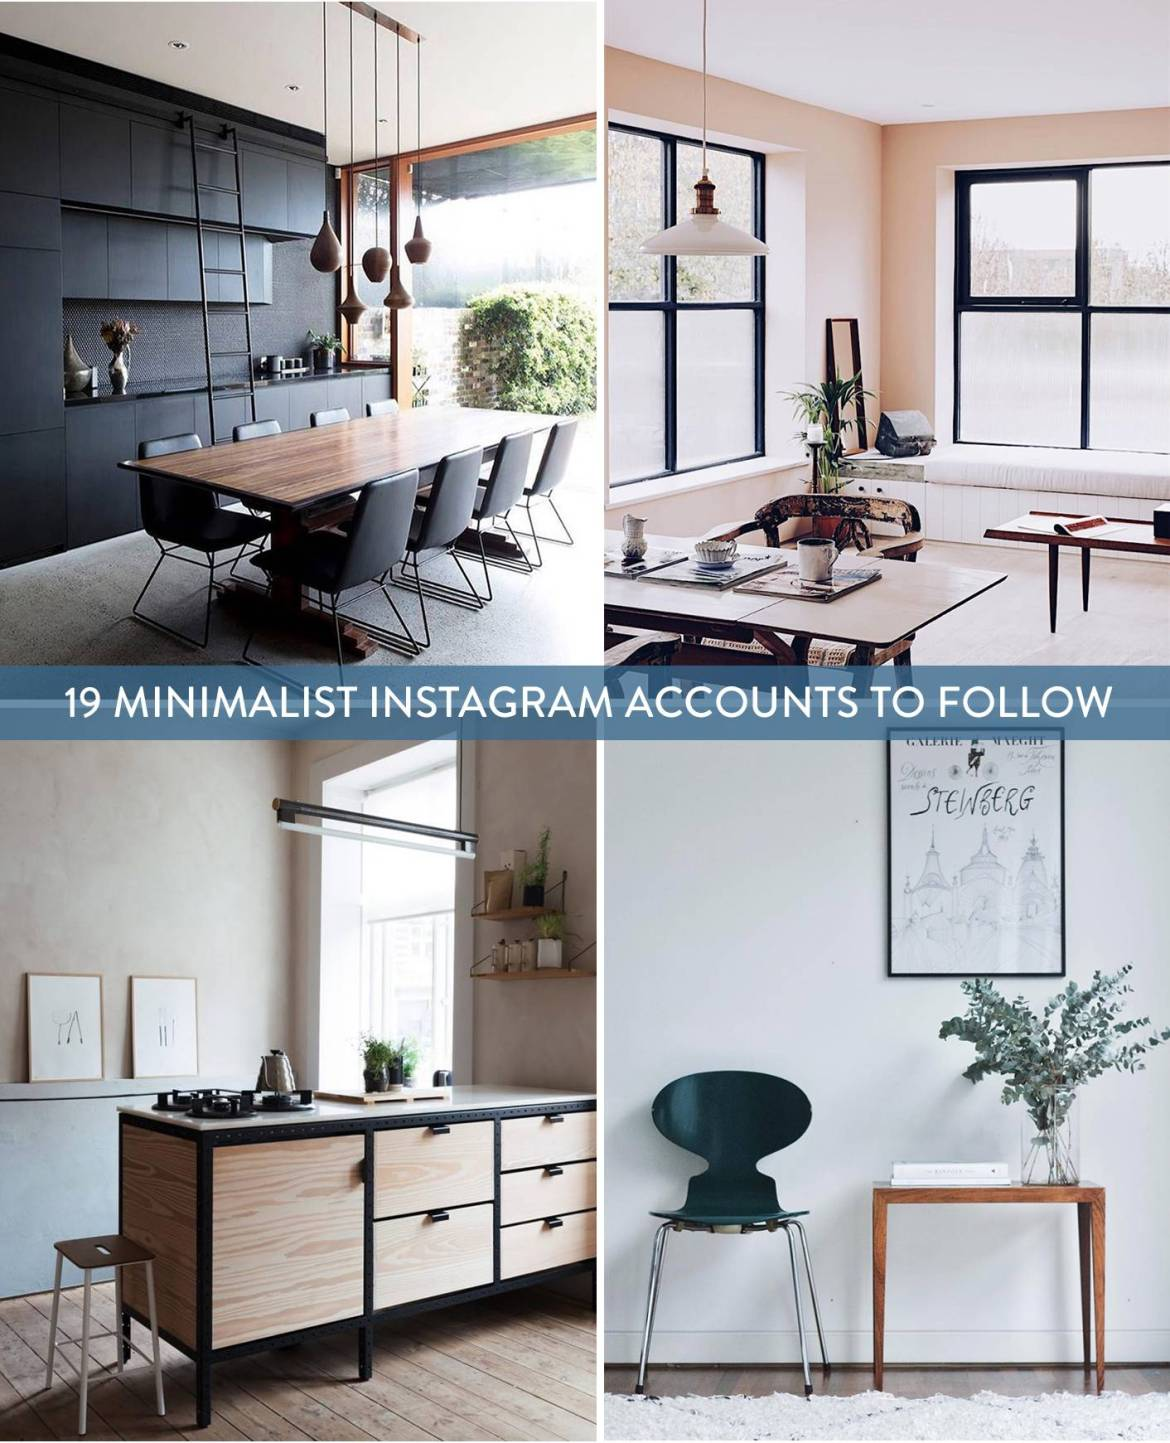 19 Instagram Accounts To Follow If You're In A Minimal Mood